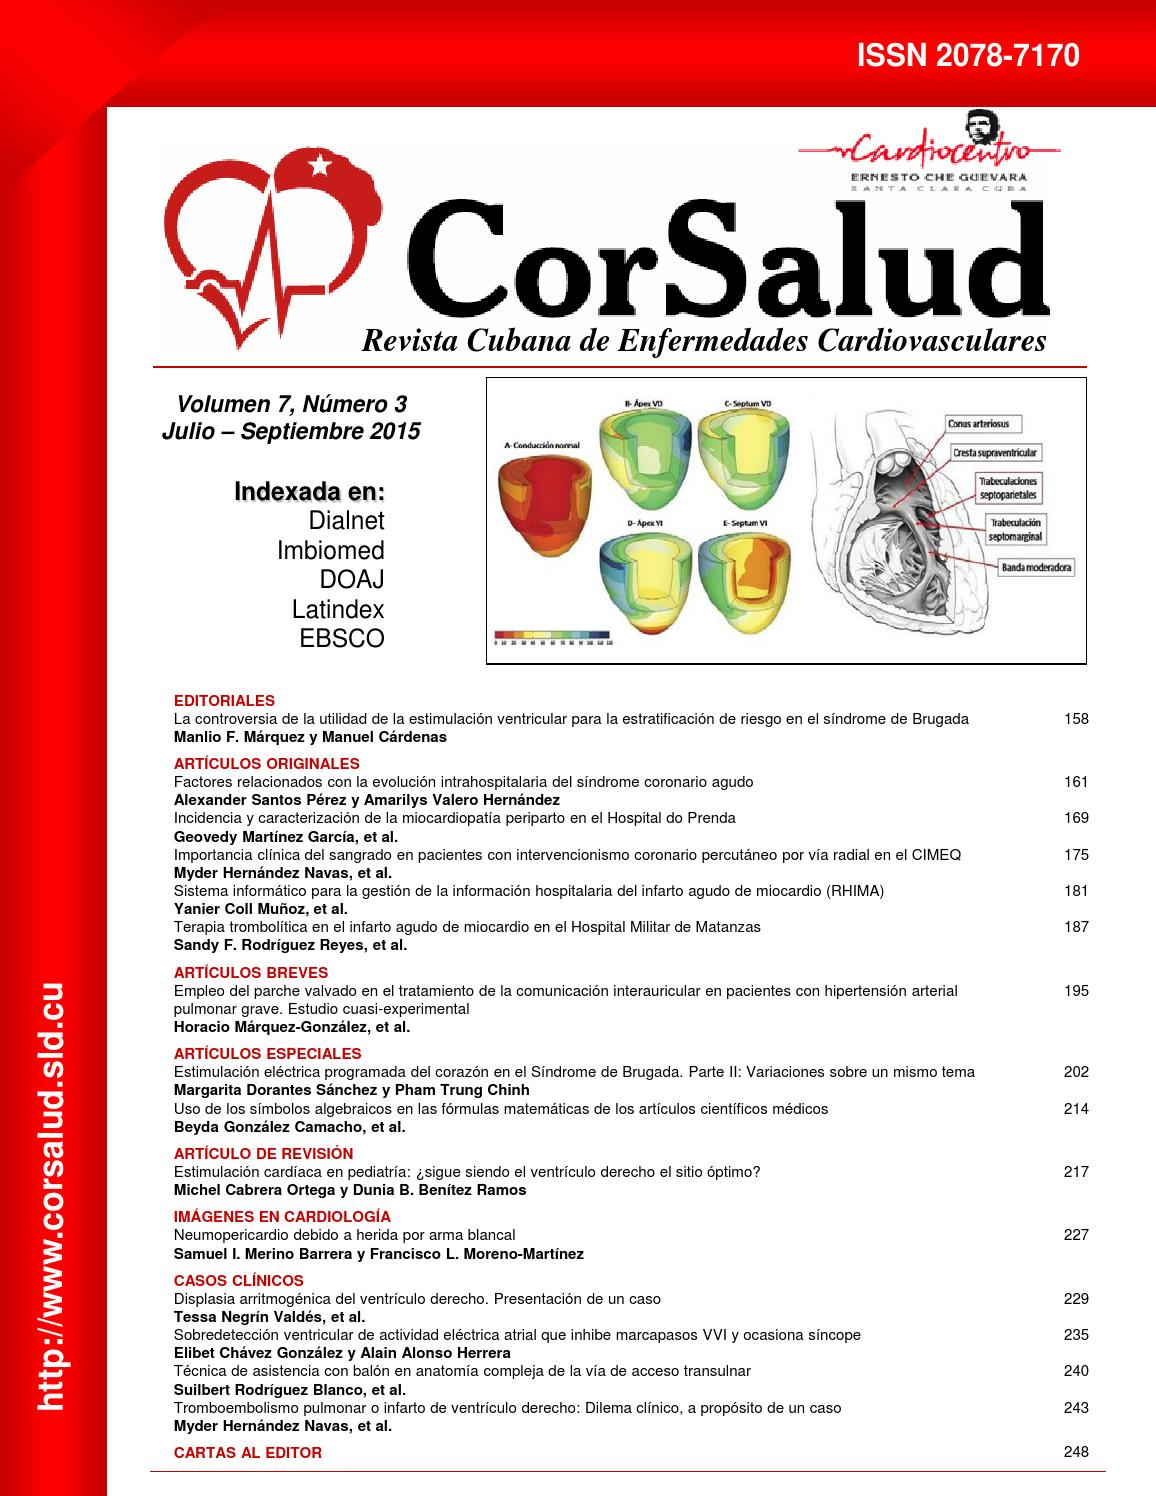 Corsalud7 3 2015 by francisco l moreno mart nez issuu for Cuales son medidas antropometricas